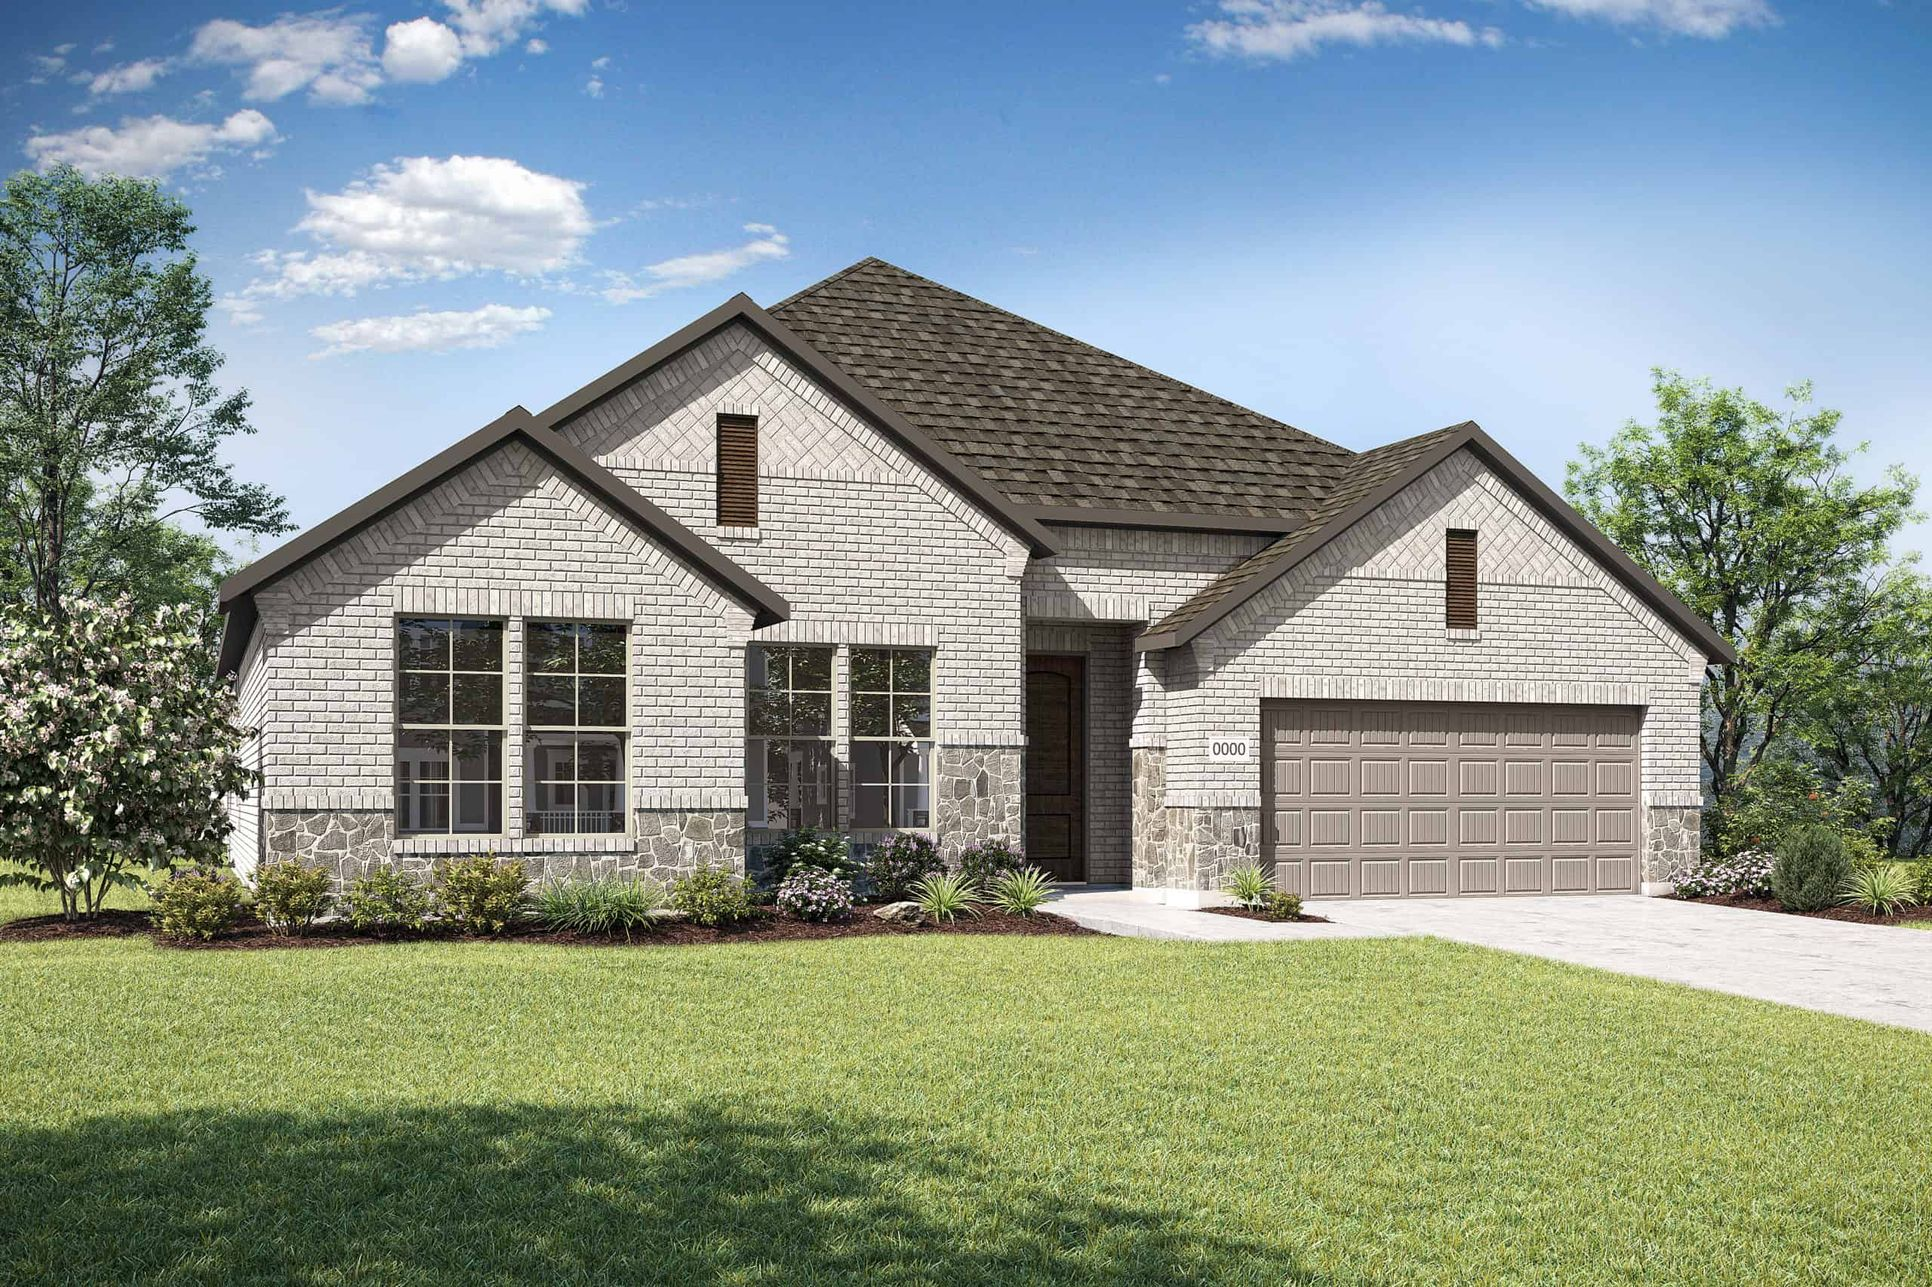 Elevation C:Elevation C is a single story brick and stone home design with a unique double basketweave brick fea